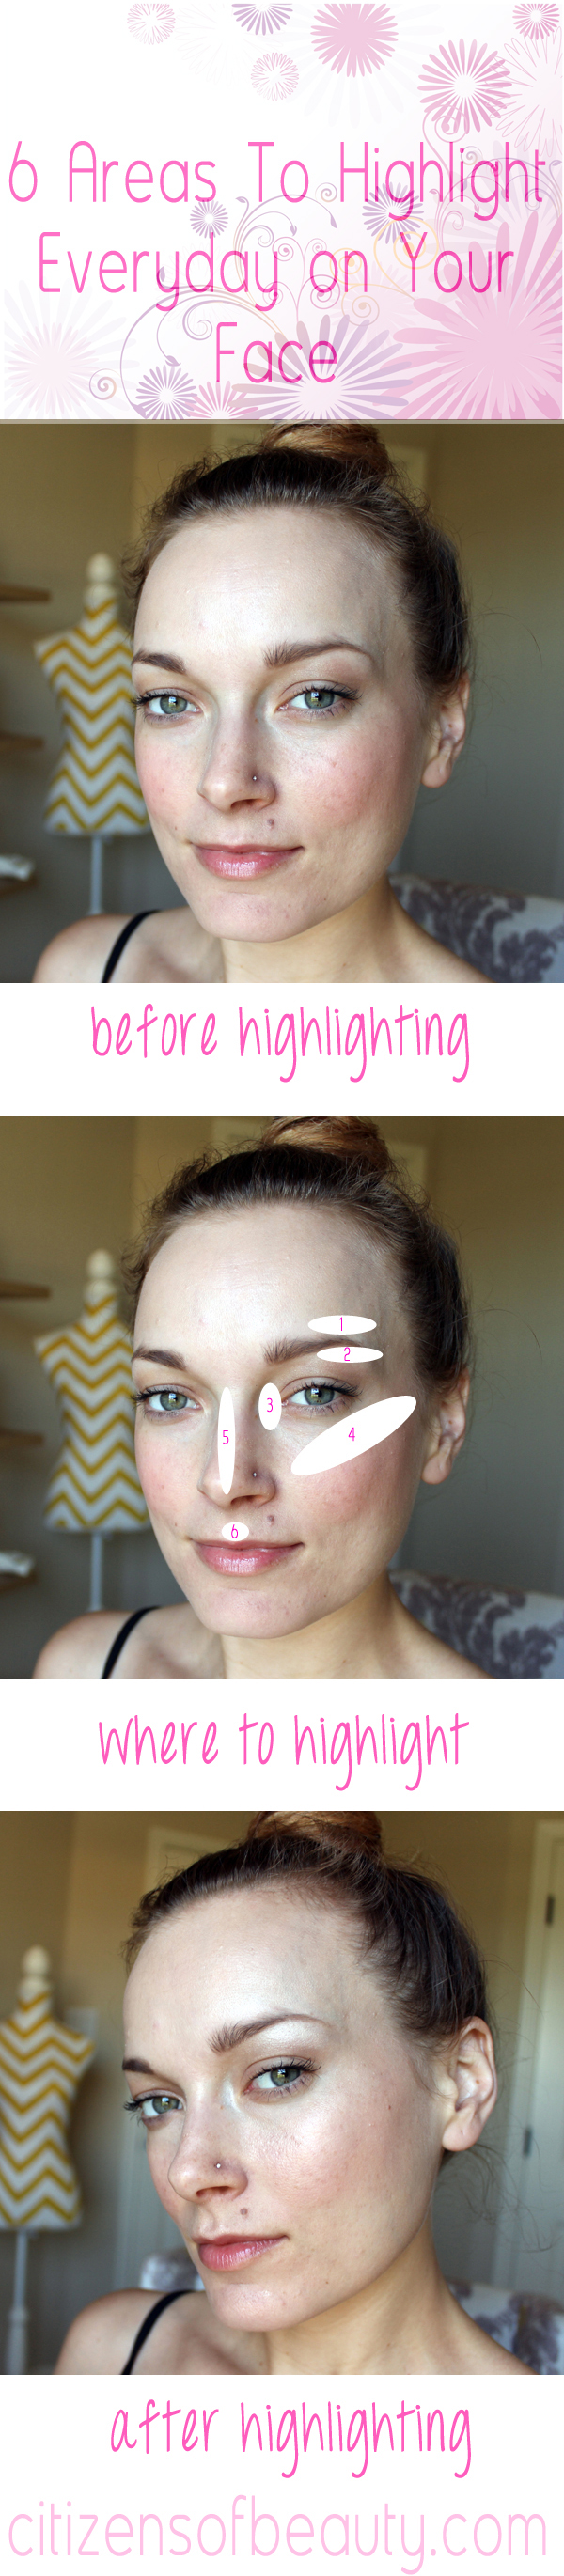 Areas of your face that should be highlighted.